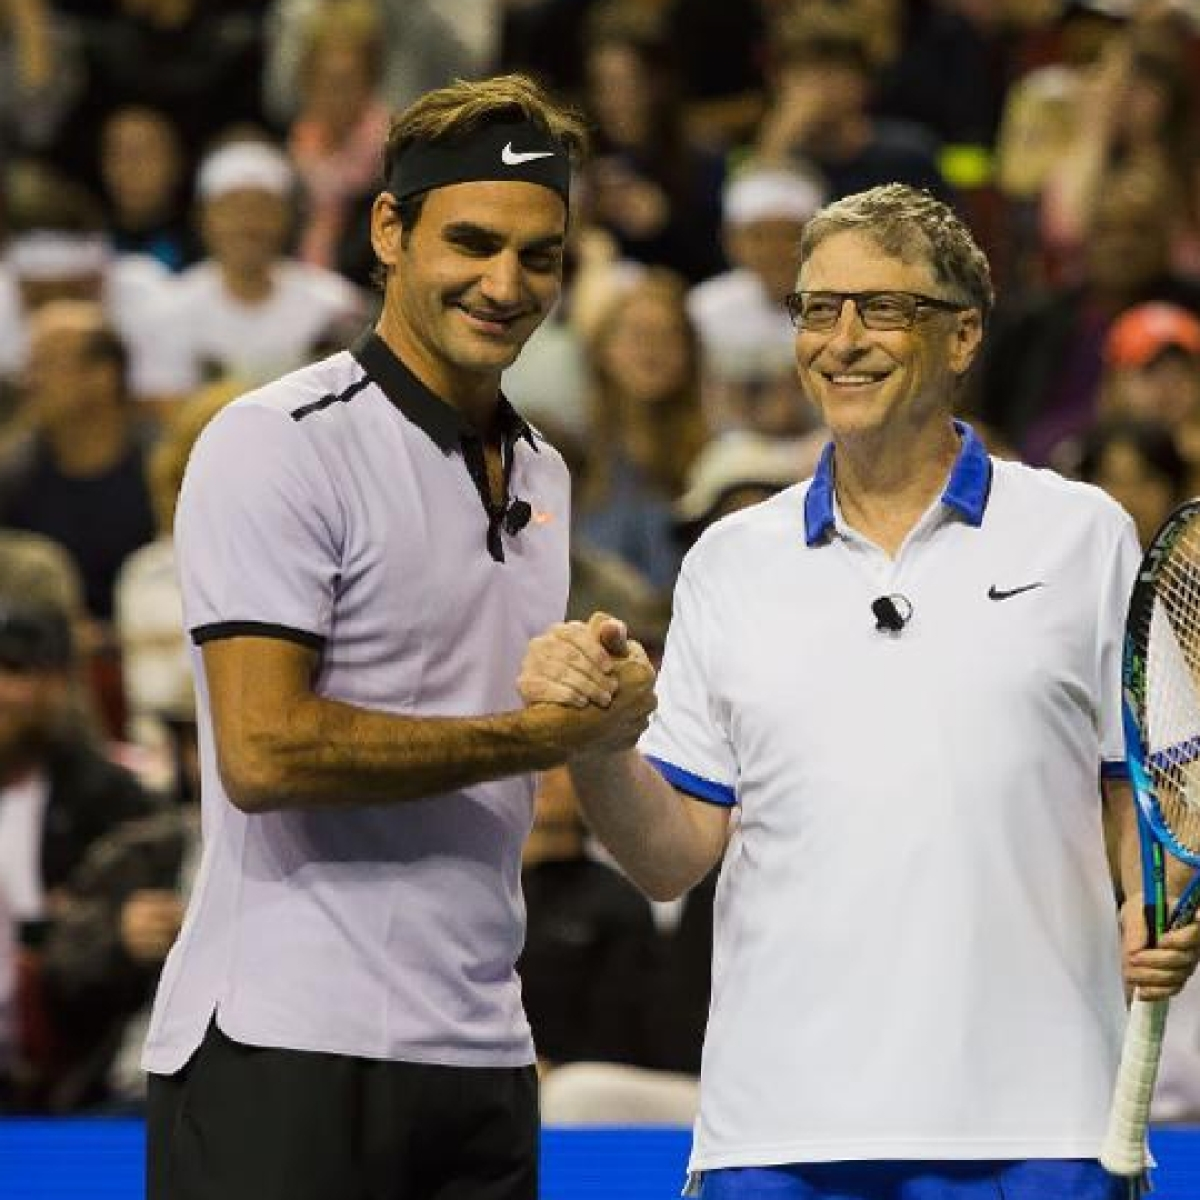 Roger Federer teams up with Bill Gates to take on Rafael Nadal and Trevor Noah in celebrity exhibition match